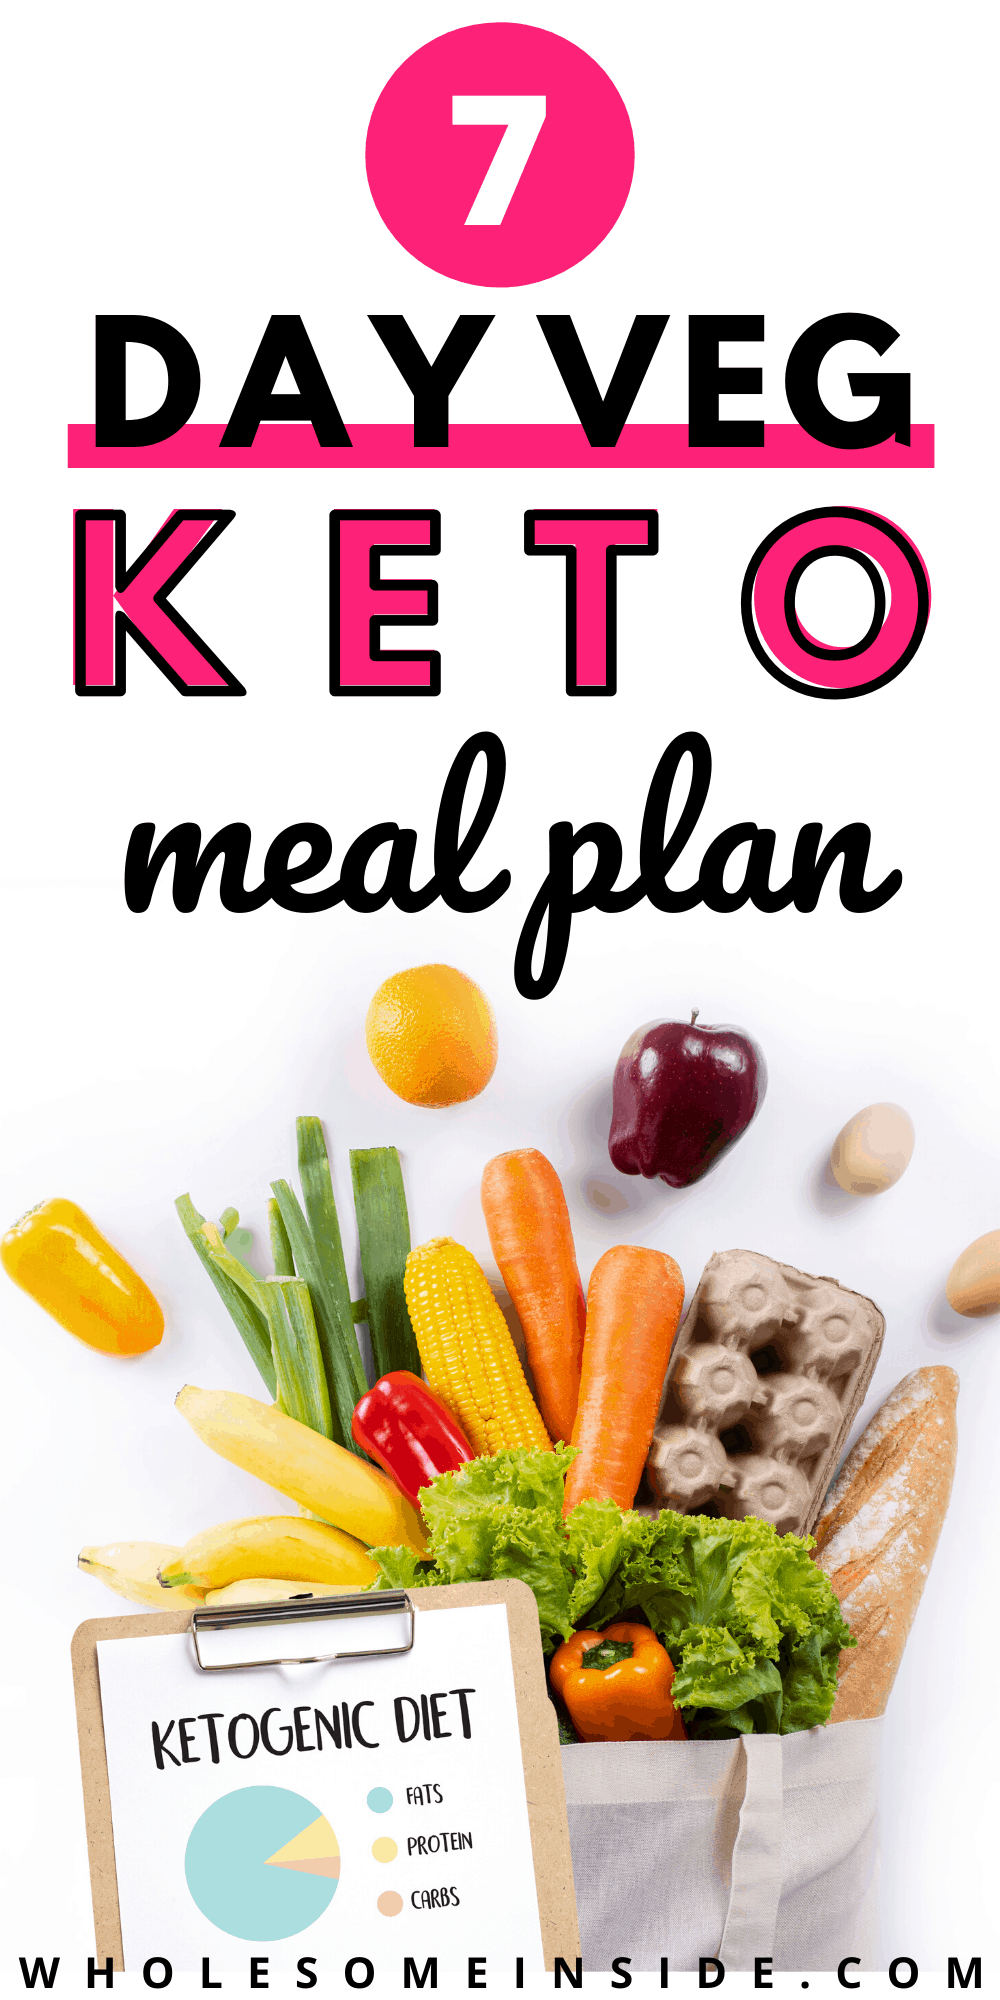 7 Day Vegetarian Keto Meal Plan Wholesome Inside